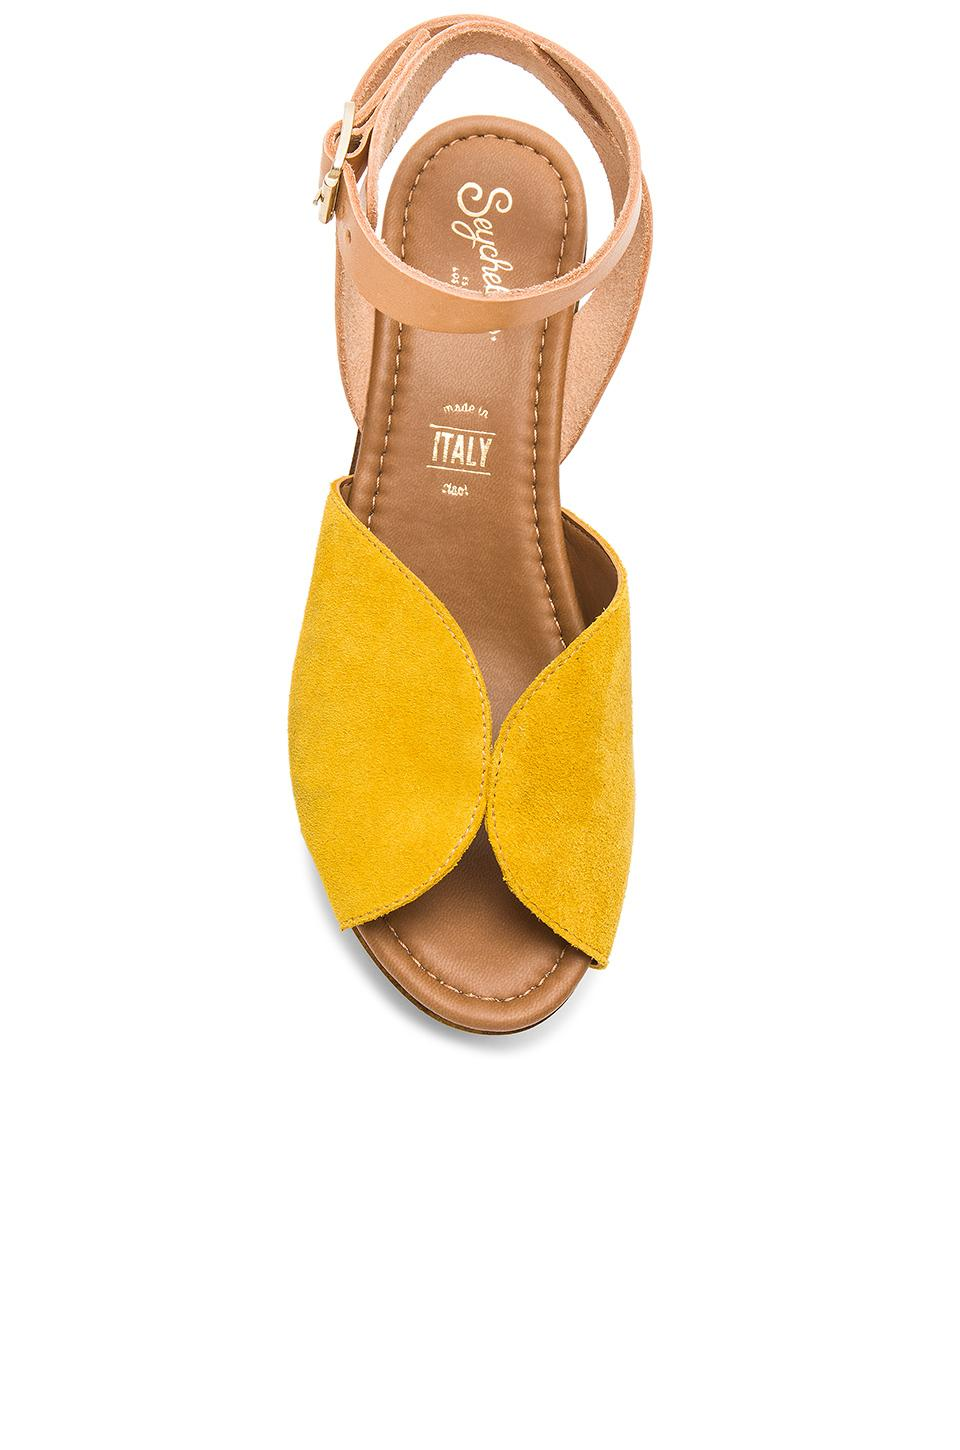 560bbbf48c8 Lyst - Seychelles Laugh More Platform in Yellow